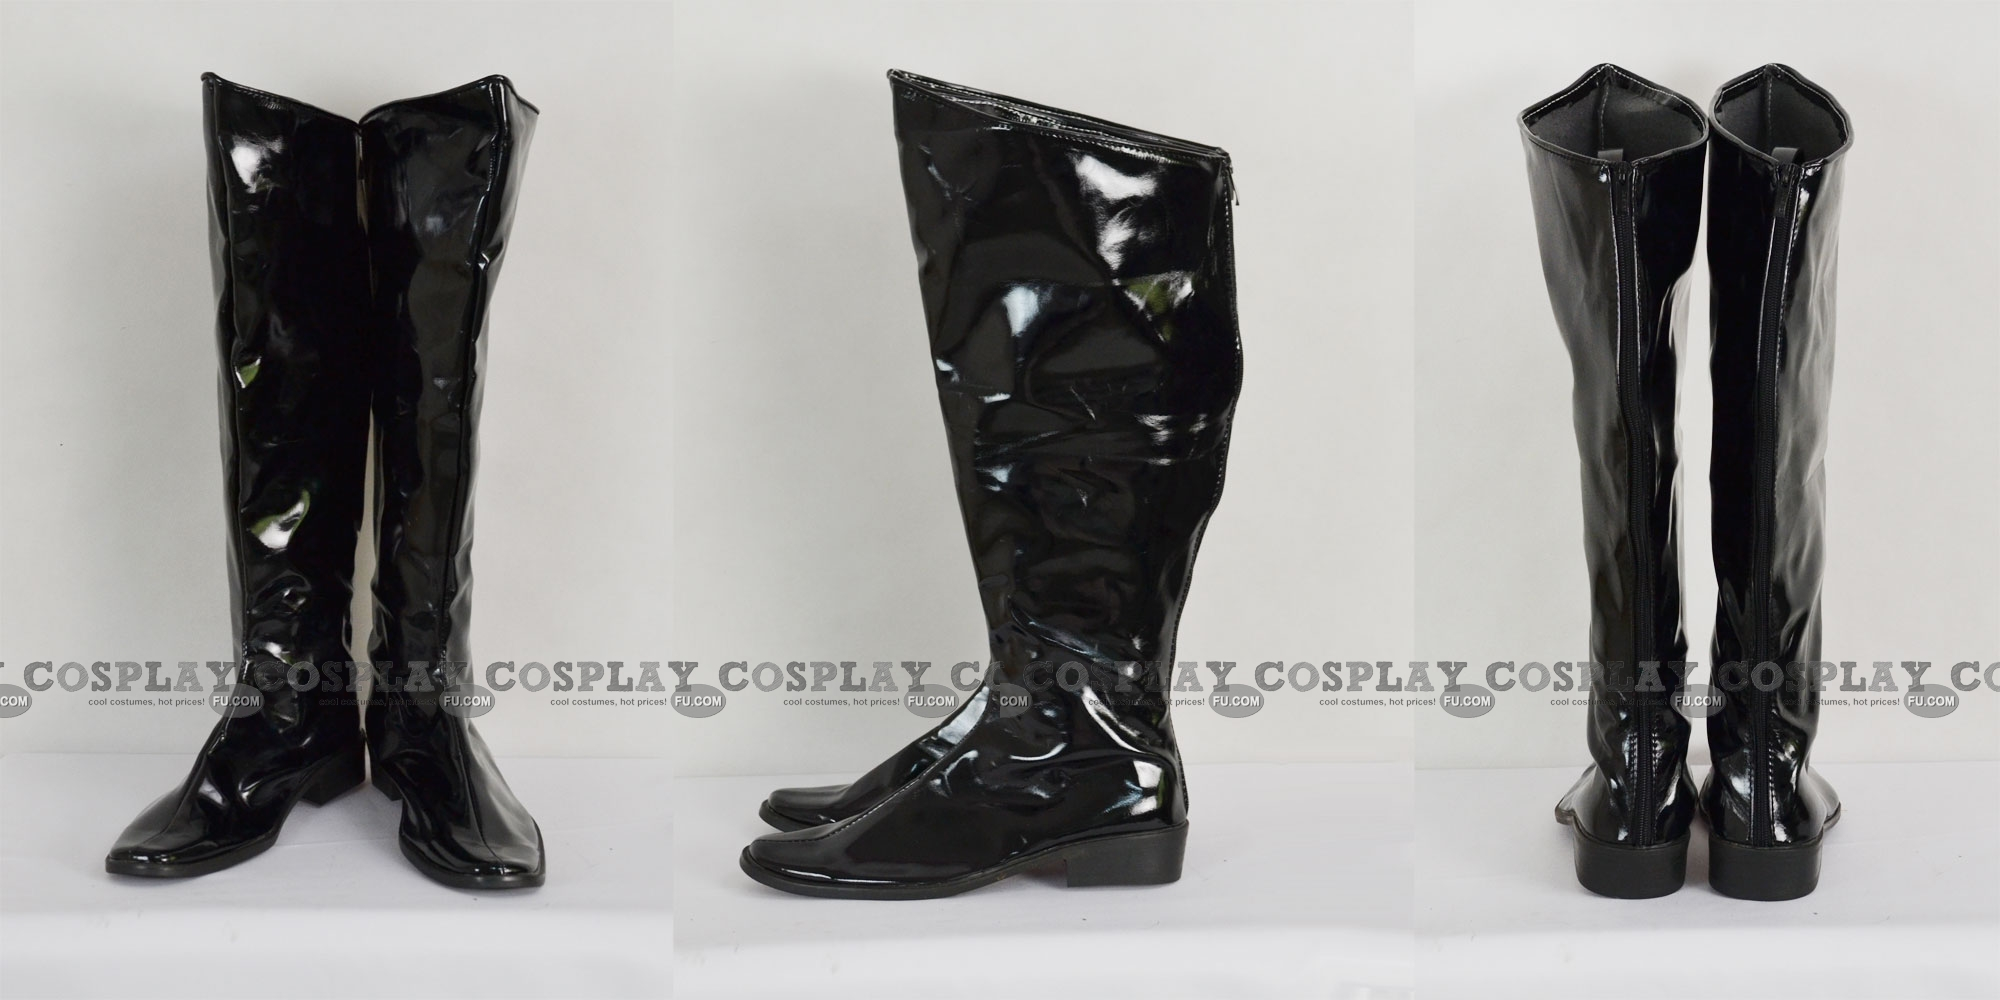 Costume Shoes (C450)